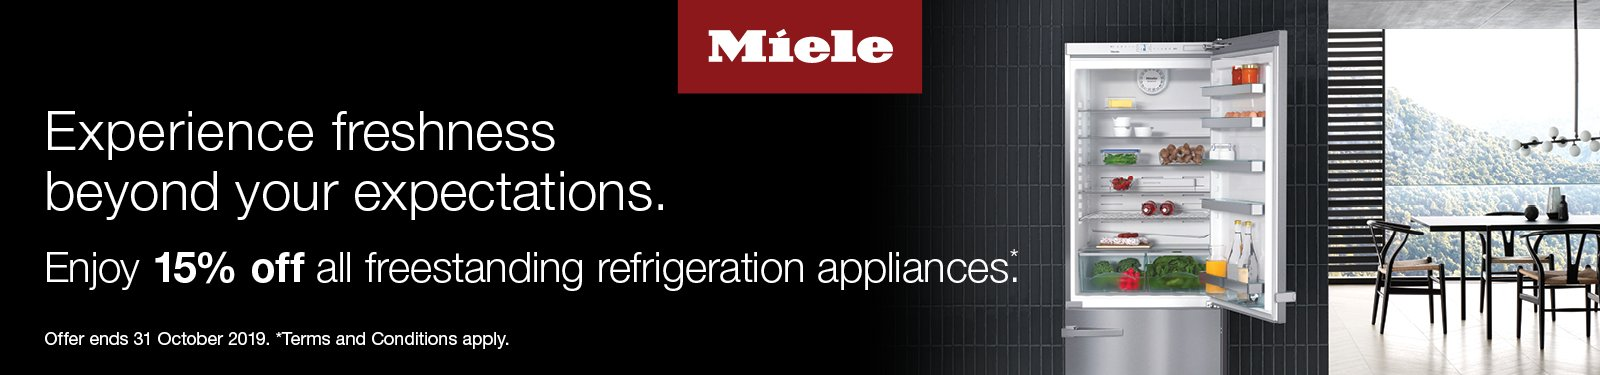 Miele 15% Off All Freestanding Refrigeration